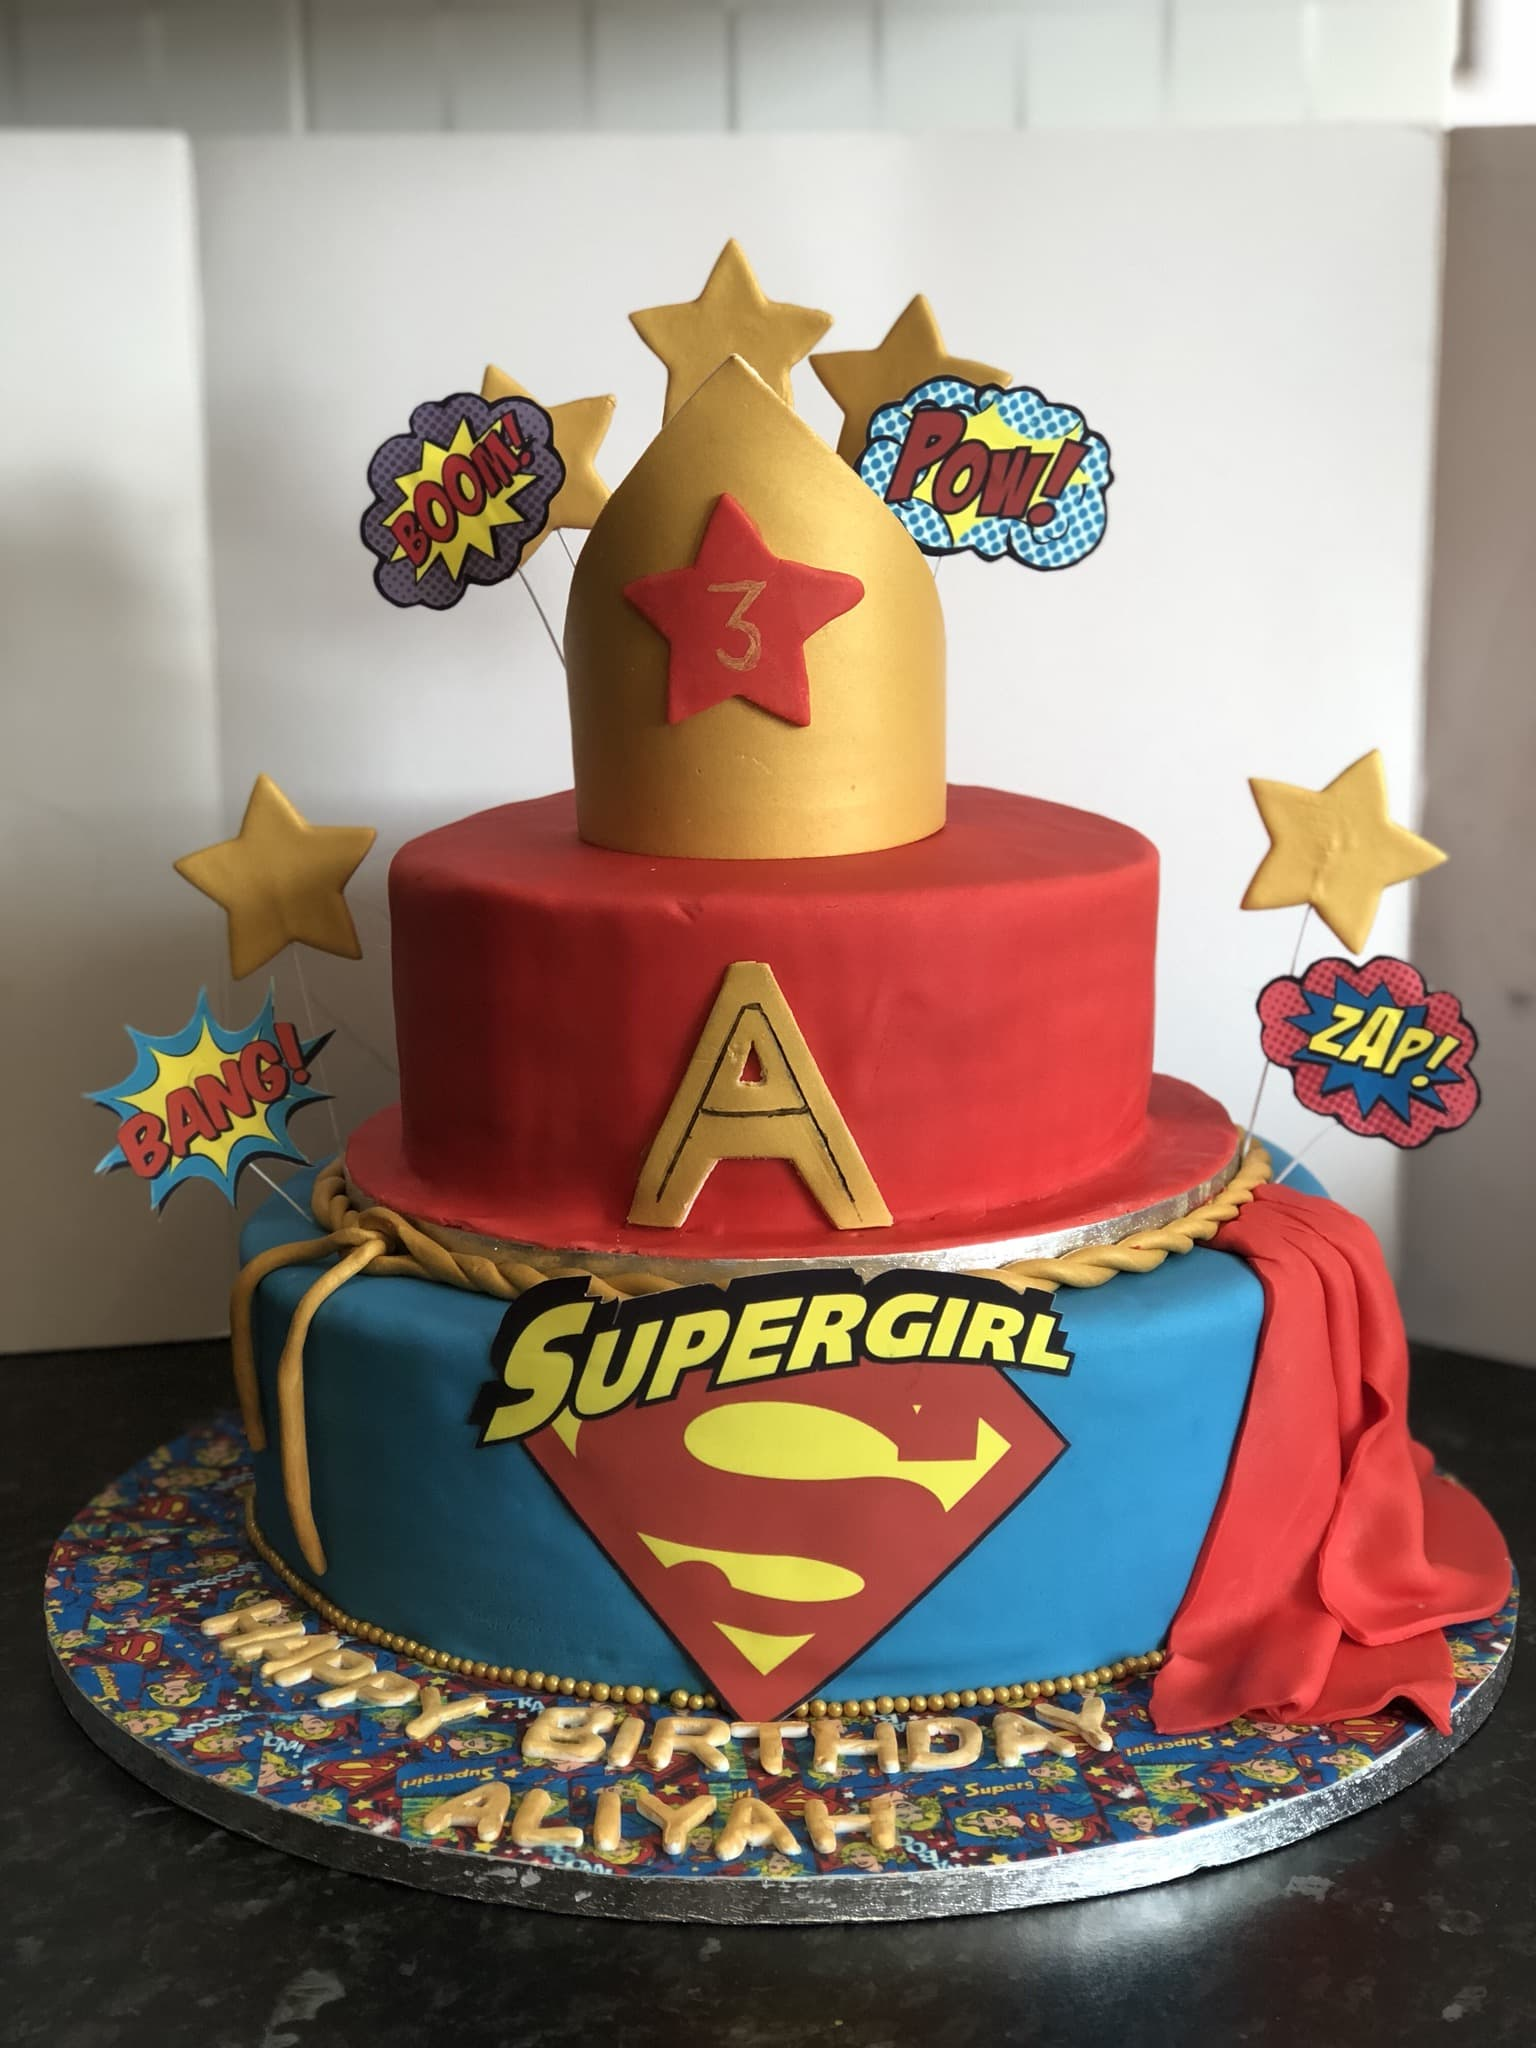 Incredible Supergirl Cake By Tempting Sweet Treats Find The Cake Funny Birthday Cards Online Elaedamsfinfo